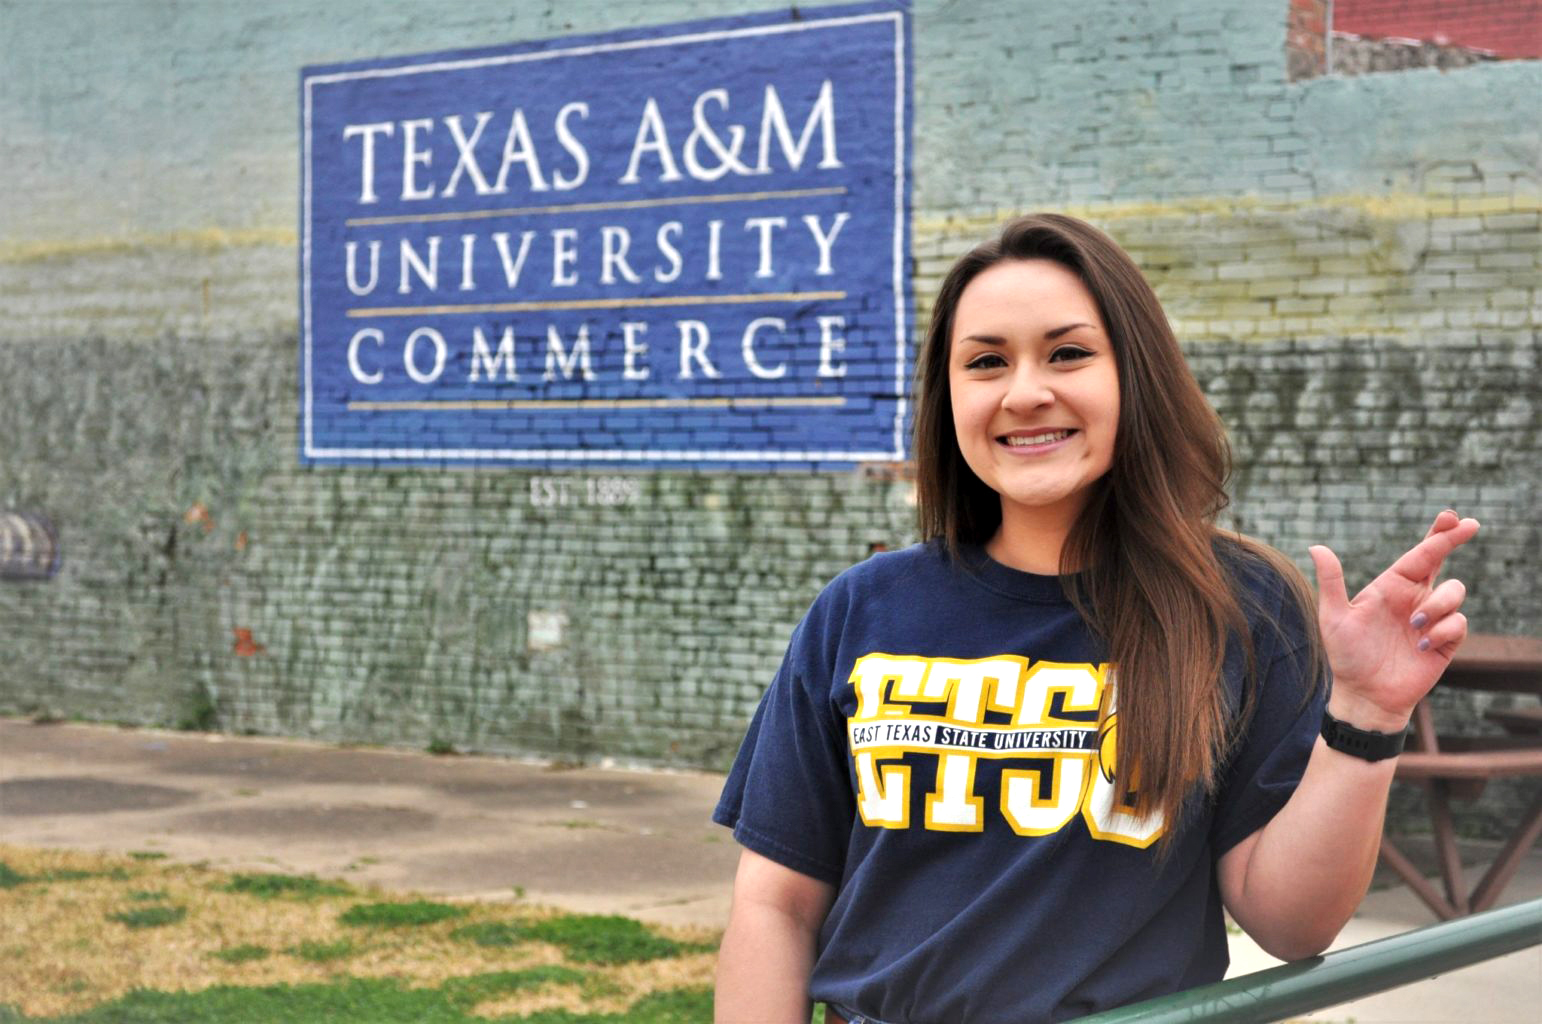 Picture of Heather Rodriguez making the lion sign with behind a mural of Texas A&M University Commerce.